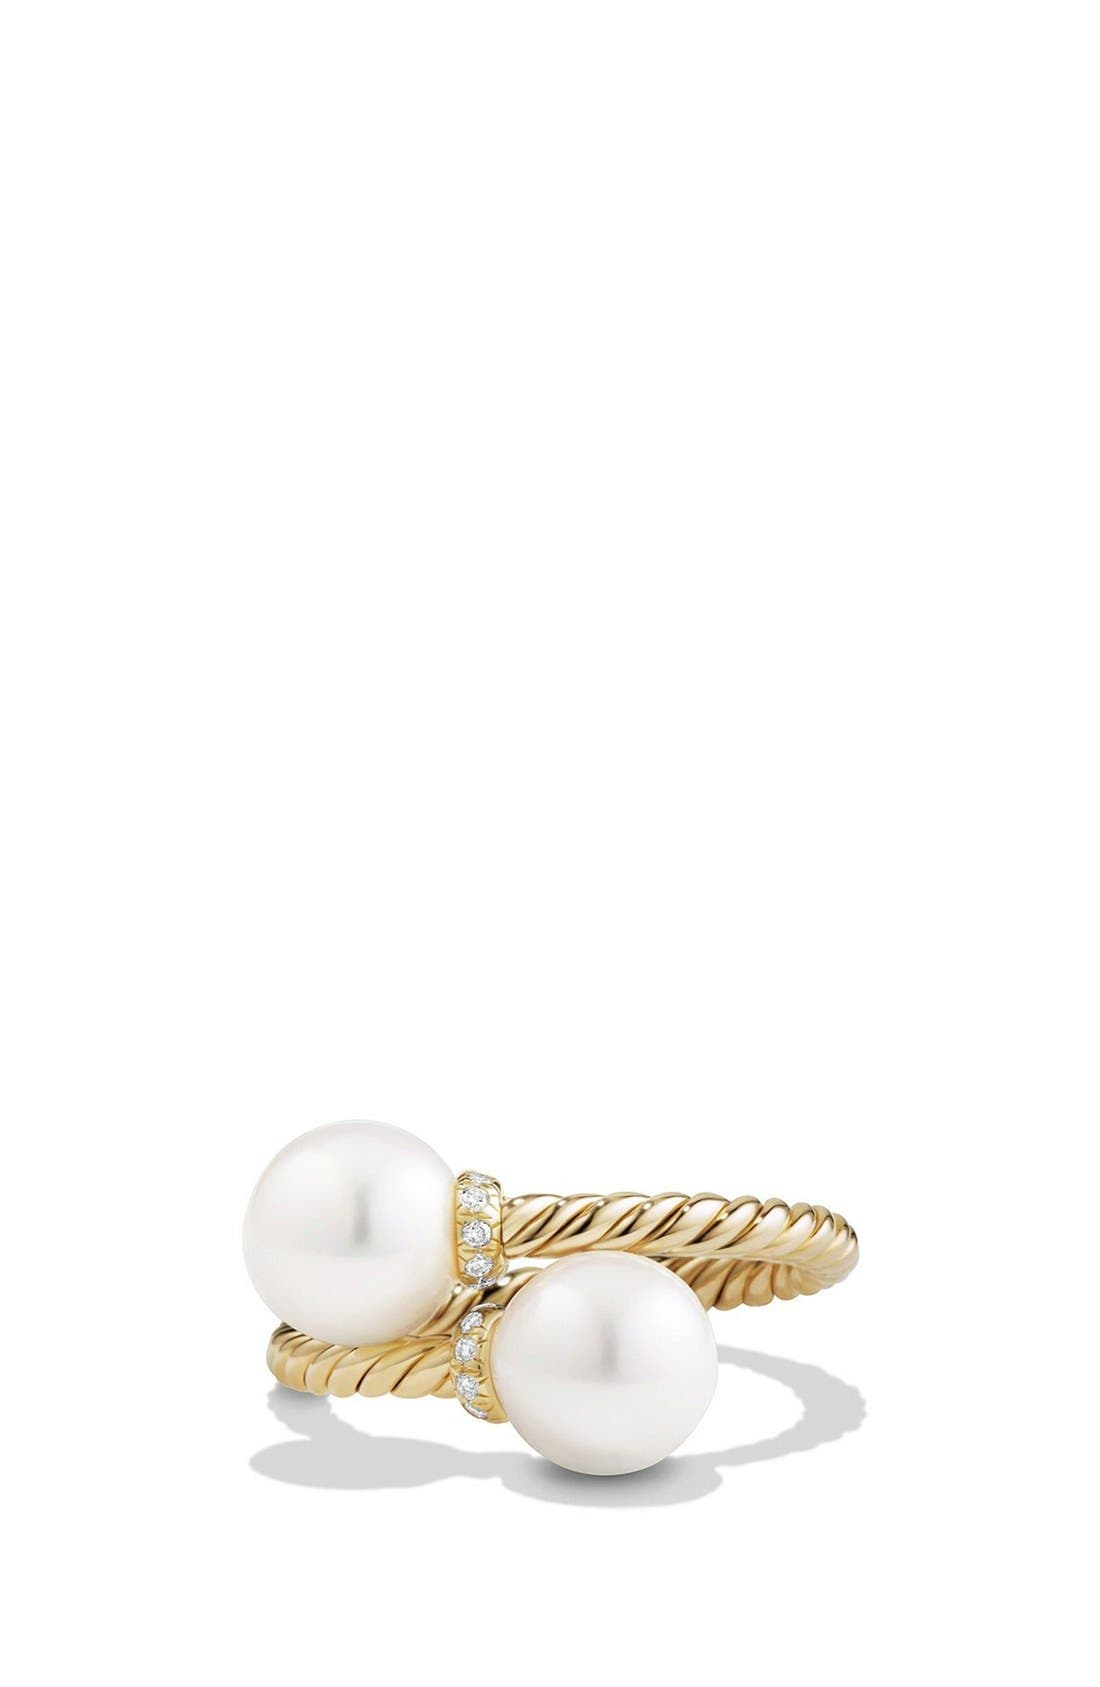 David Yurman 'Solari' Bead Ring with Diamonds and Pearls in 18K Gold